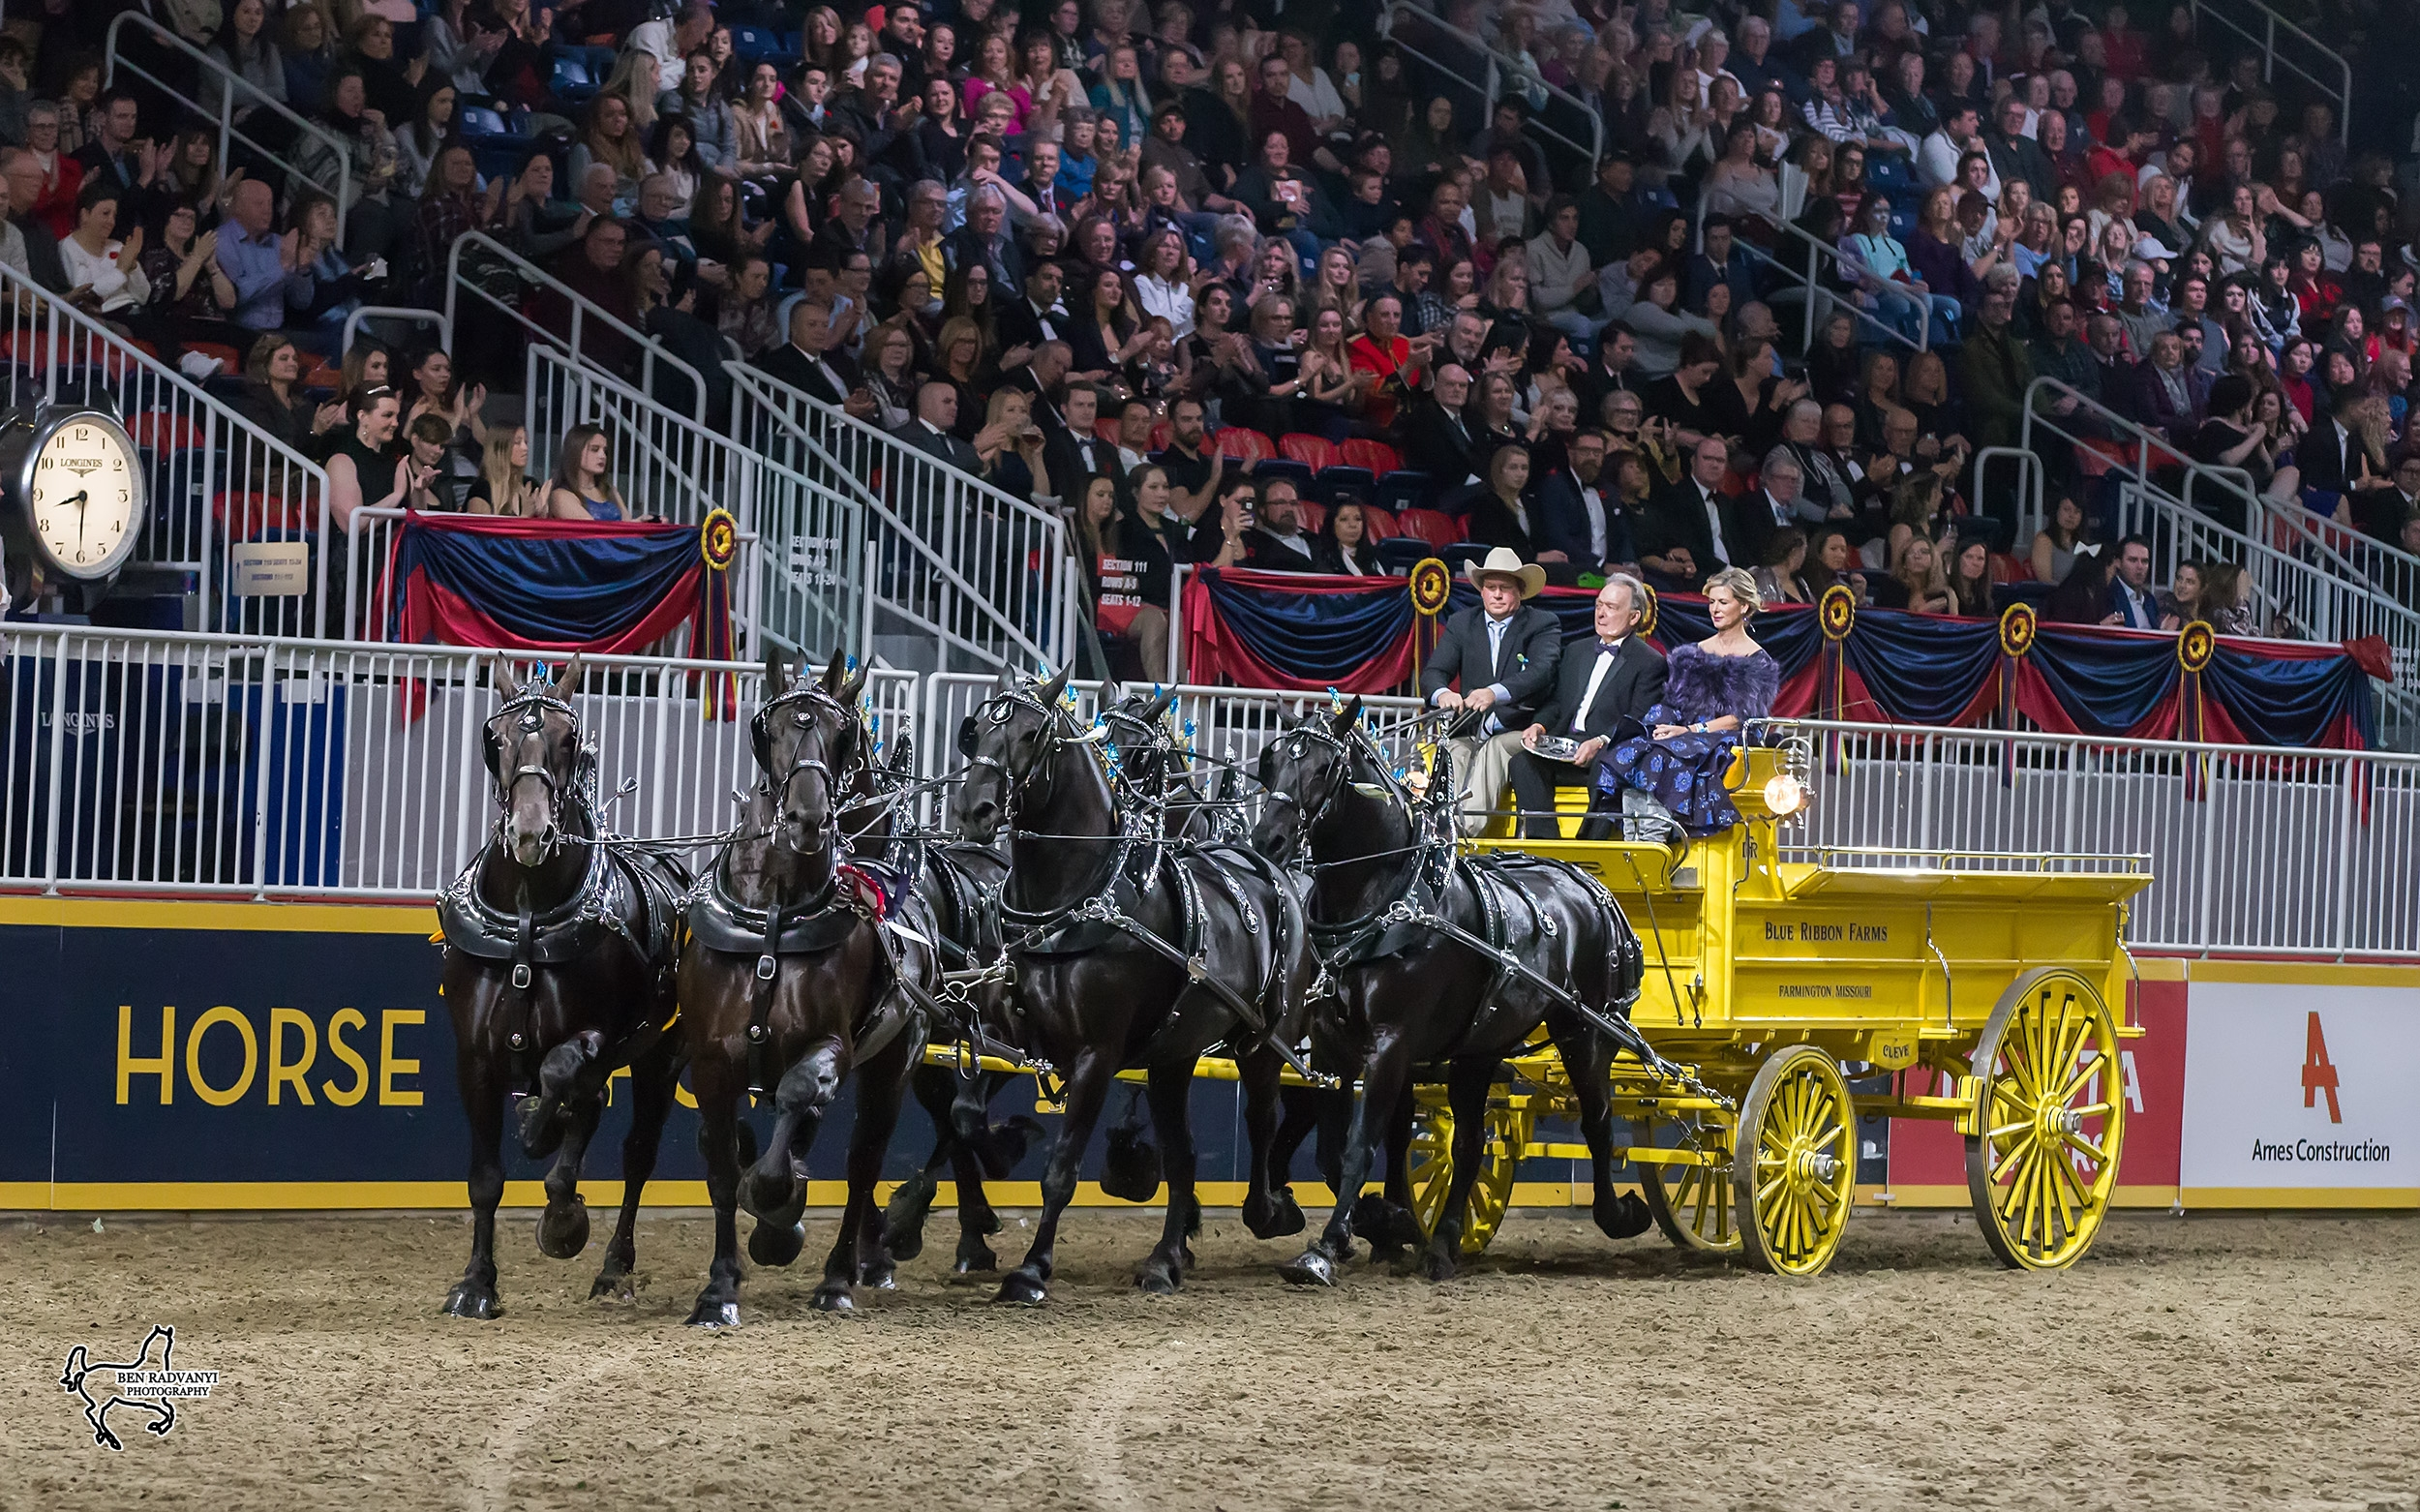 Blue Ribbon Days Percherons, driven by Dean Woodbury and owned by the Albert Cleve and Jim Day families, won the $25,000 Royal Six-Horse Draft Championship on closing night of the 2017 Royal Horse Show in Toronto, ON. <br><b>Photo by <a href='http://benradvanyi.photoshelter.com'target='_blank'>Ben Radvanyi Photography</a></b>